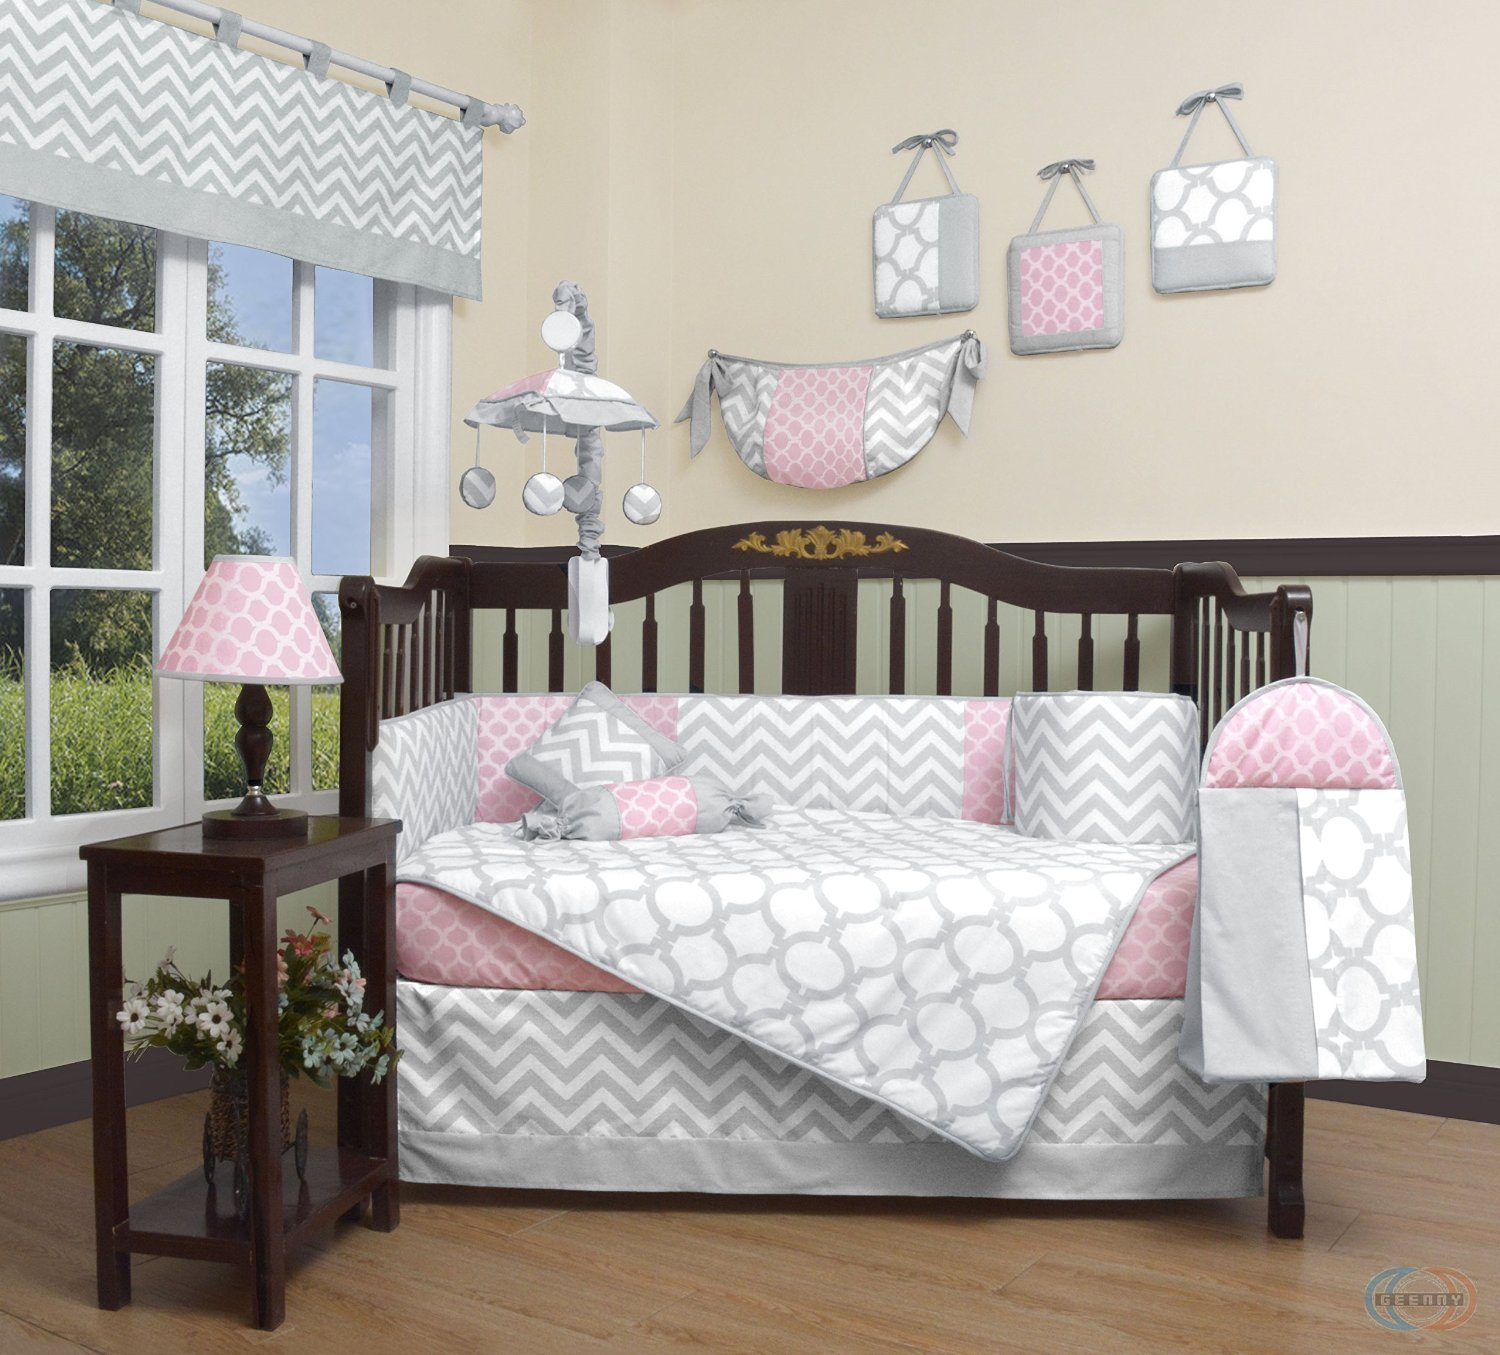 Design Baby Bed Set amazon com geenny boutique baby 13 piece crib bedding set salmon pinkgray chevron baby